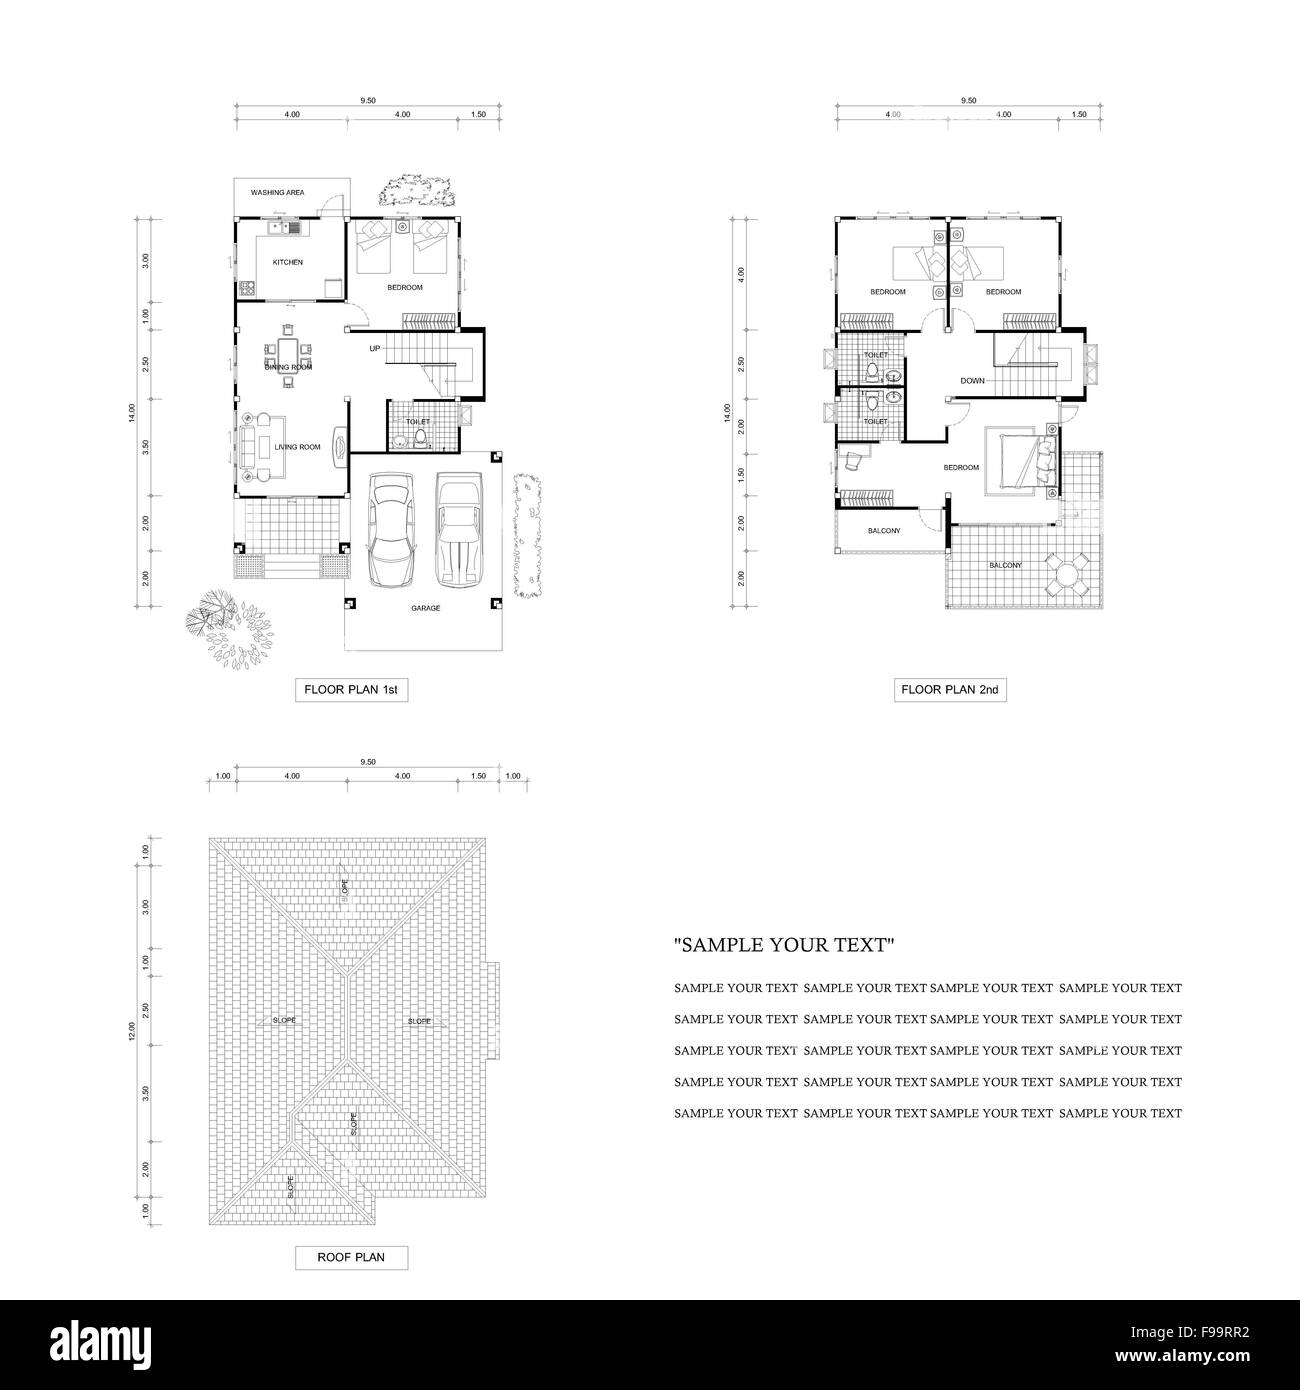 Architecture plan drawing design house plans downstairs and stock architecture plan drawing design house plans downstairs and upstairs ccuart Images